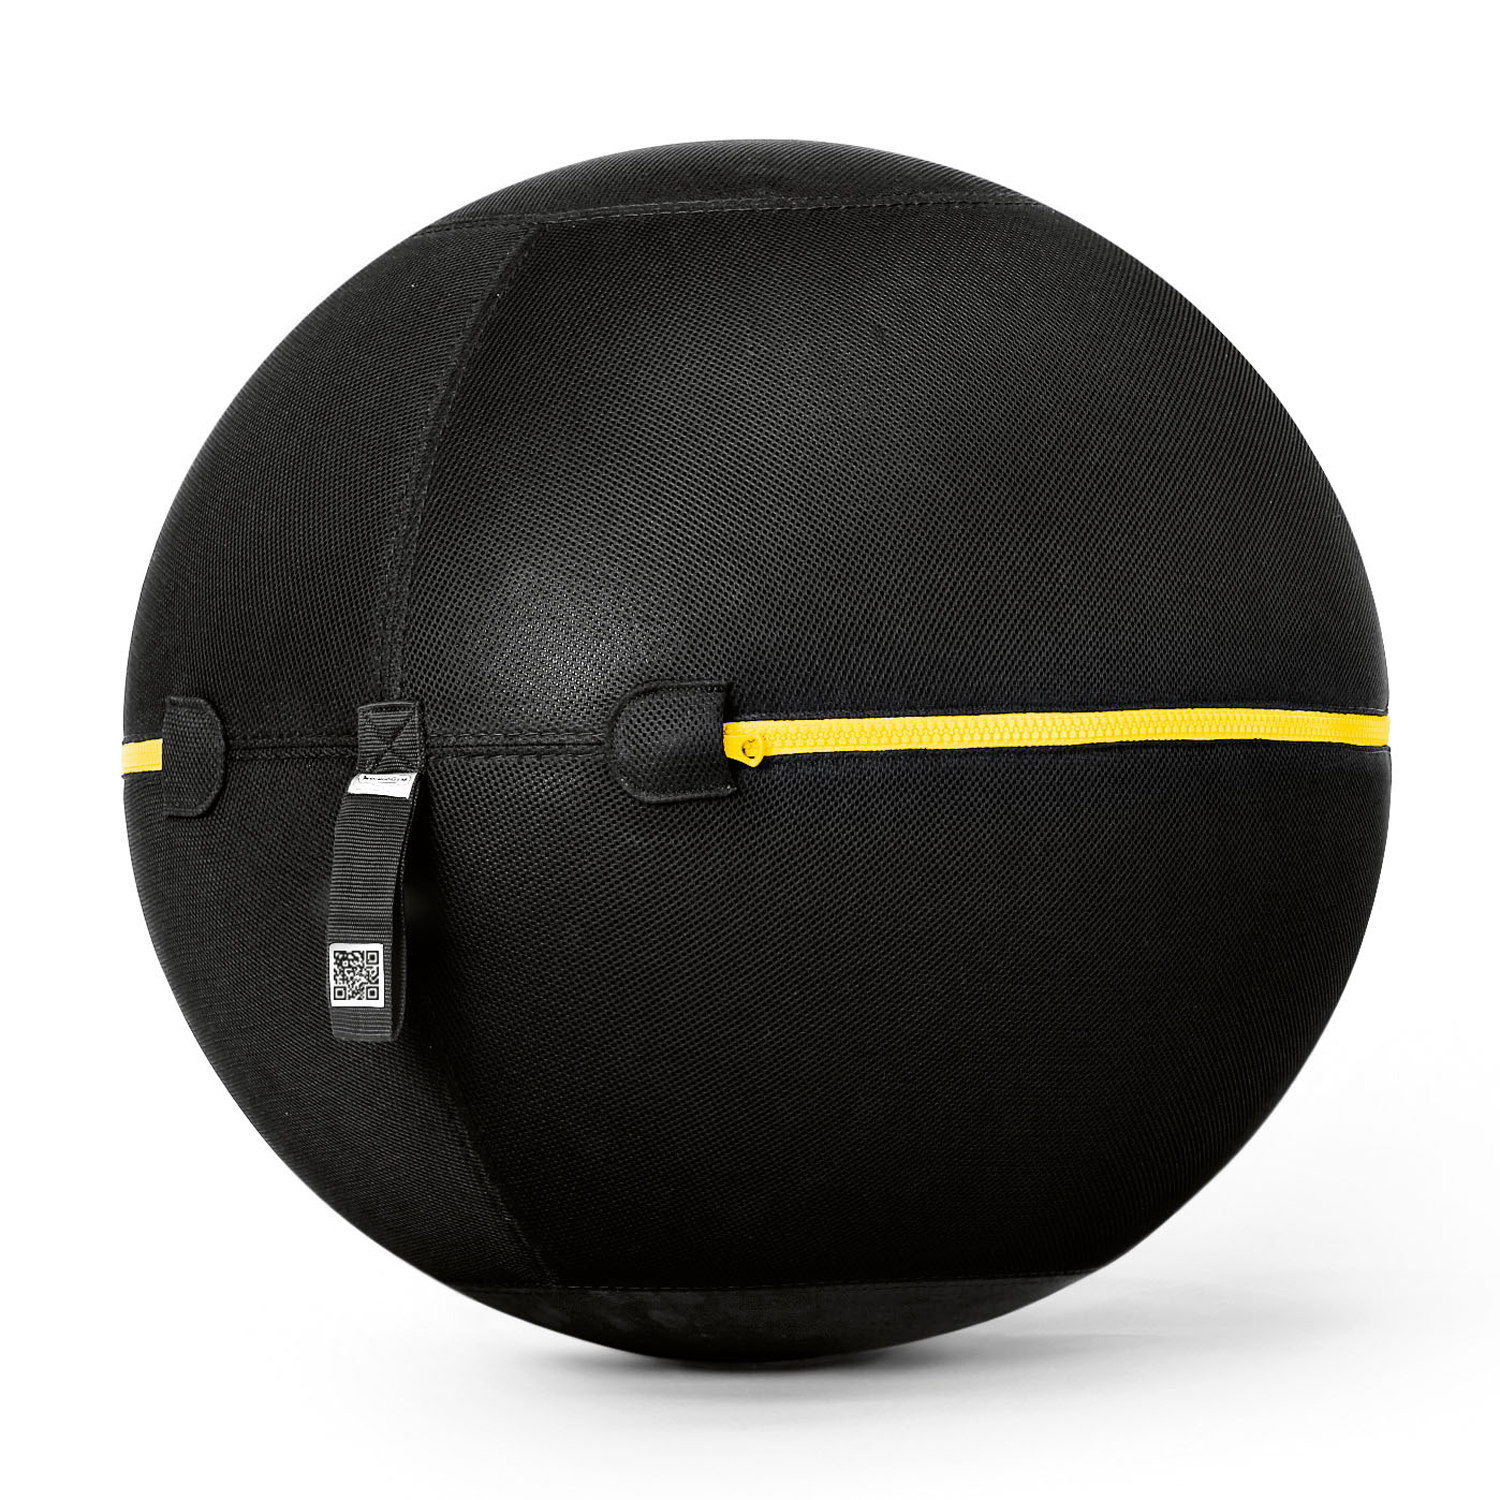 Technogym Wellness Ball - Active Sitting (55cm)